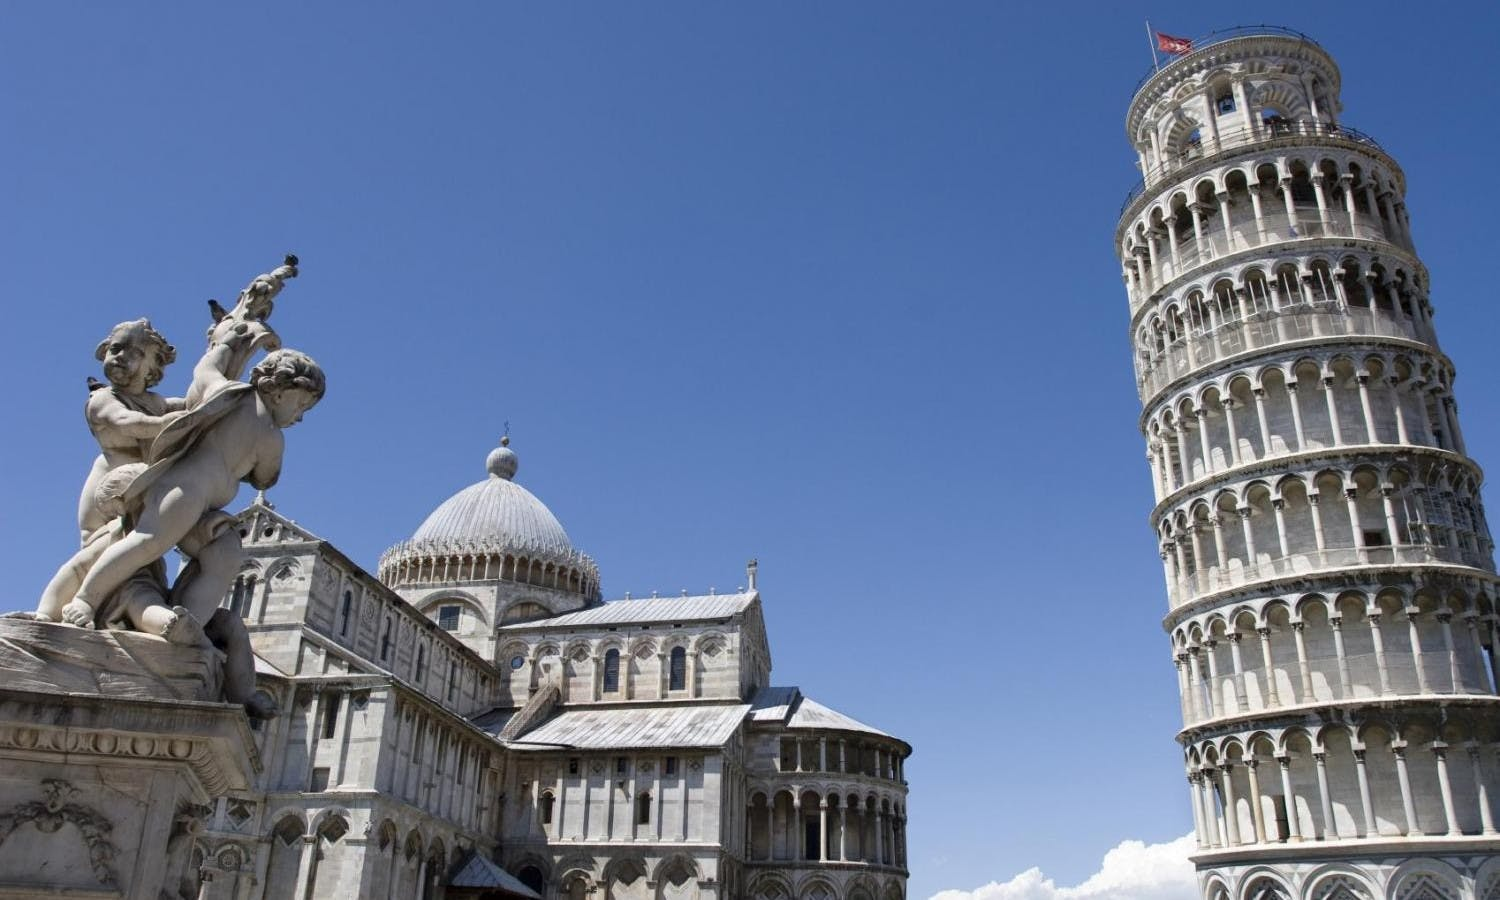 Best of Pisa guided visit with Leaning Tower and Cathedral skip-the-line tickets